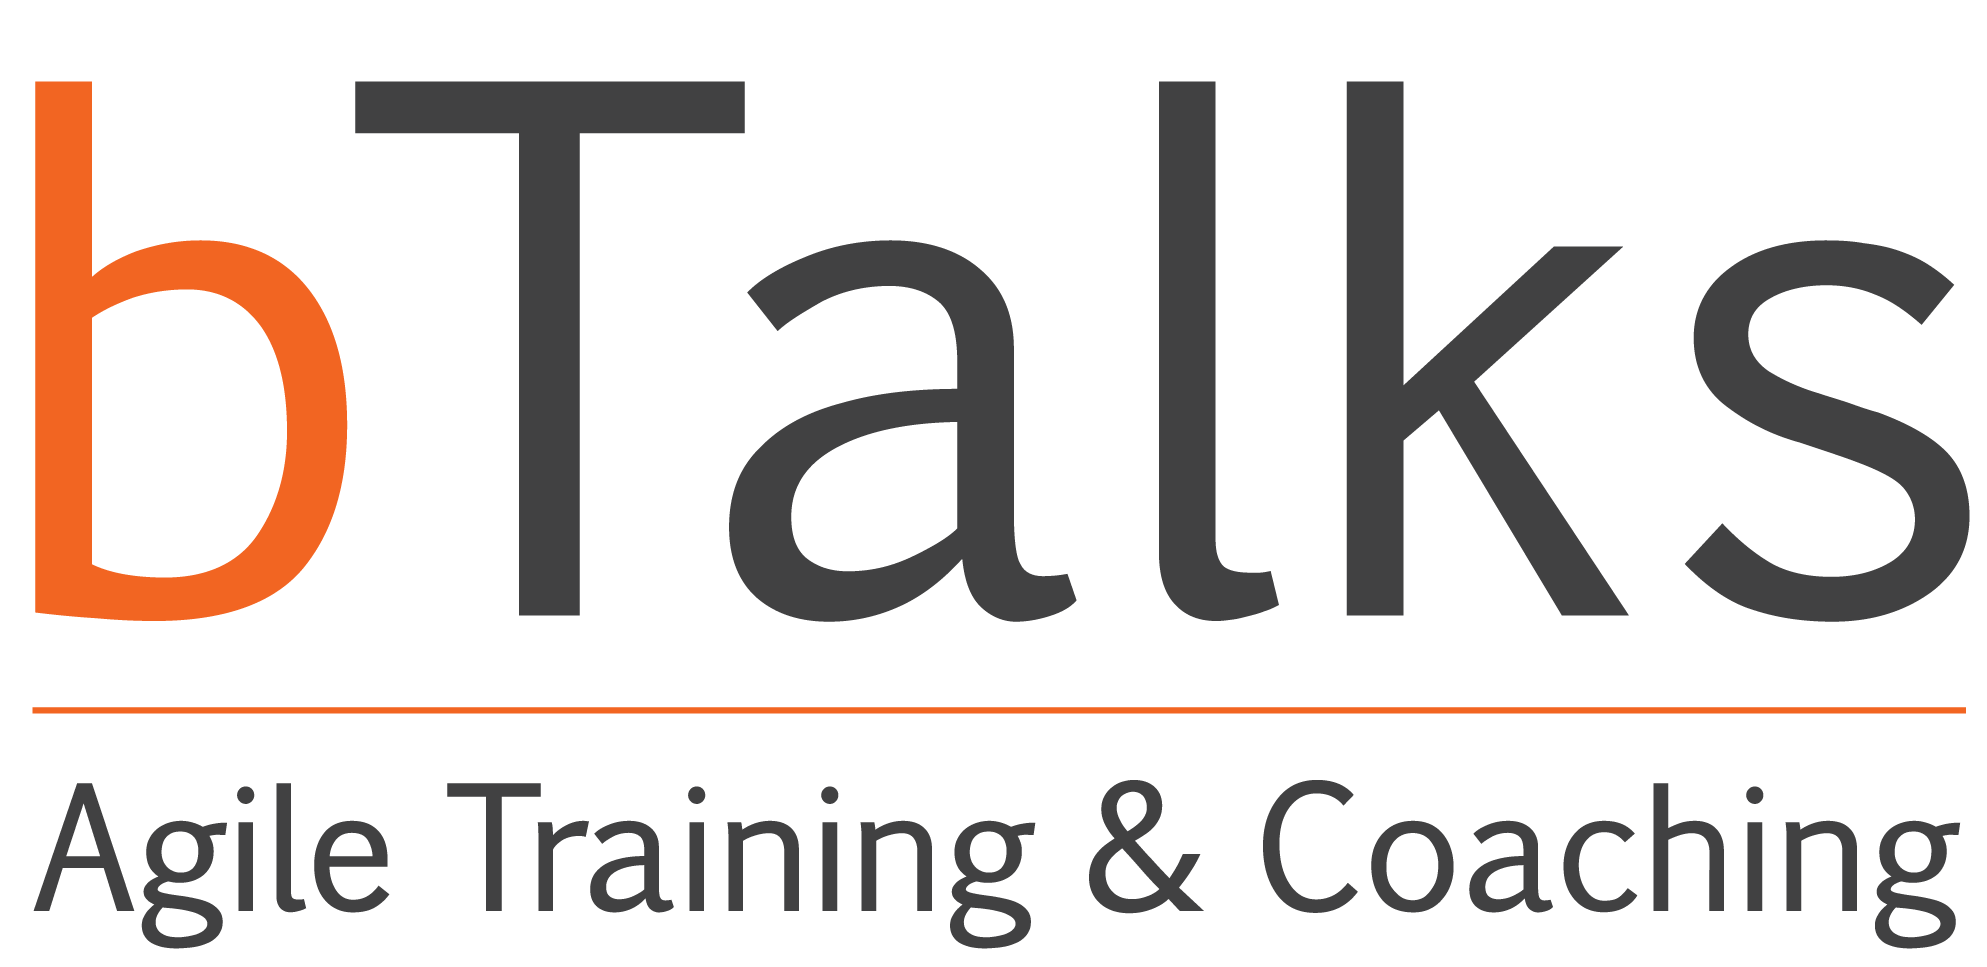 bTalks Agile Training & Coaching